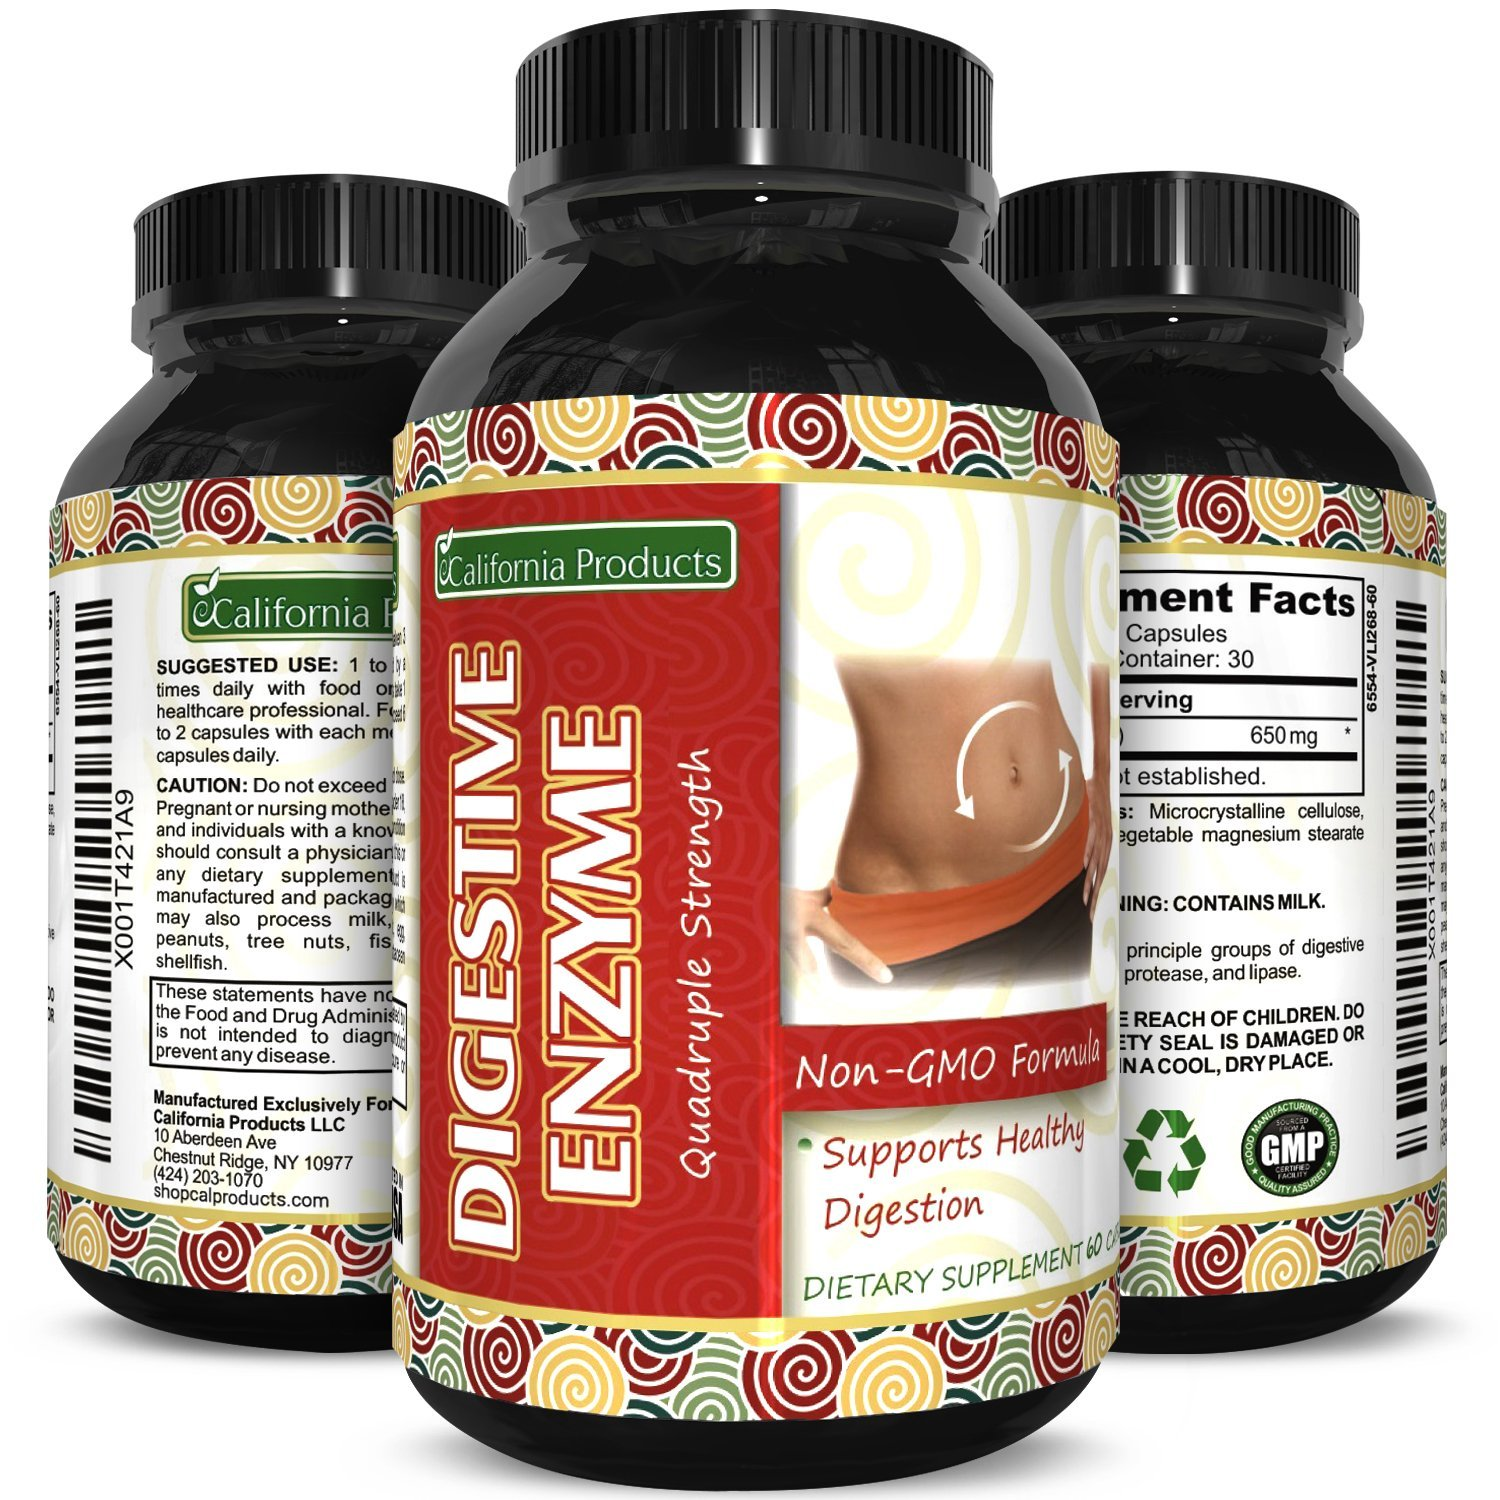 Potent Digestive Enzymes Supplement with Protease Enzyme, Acidophilus, Bromelain Capsules and Lactase Supplements, Break Down Protein and Carbohydrates with Immune System Booster